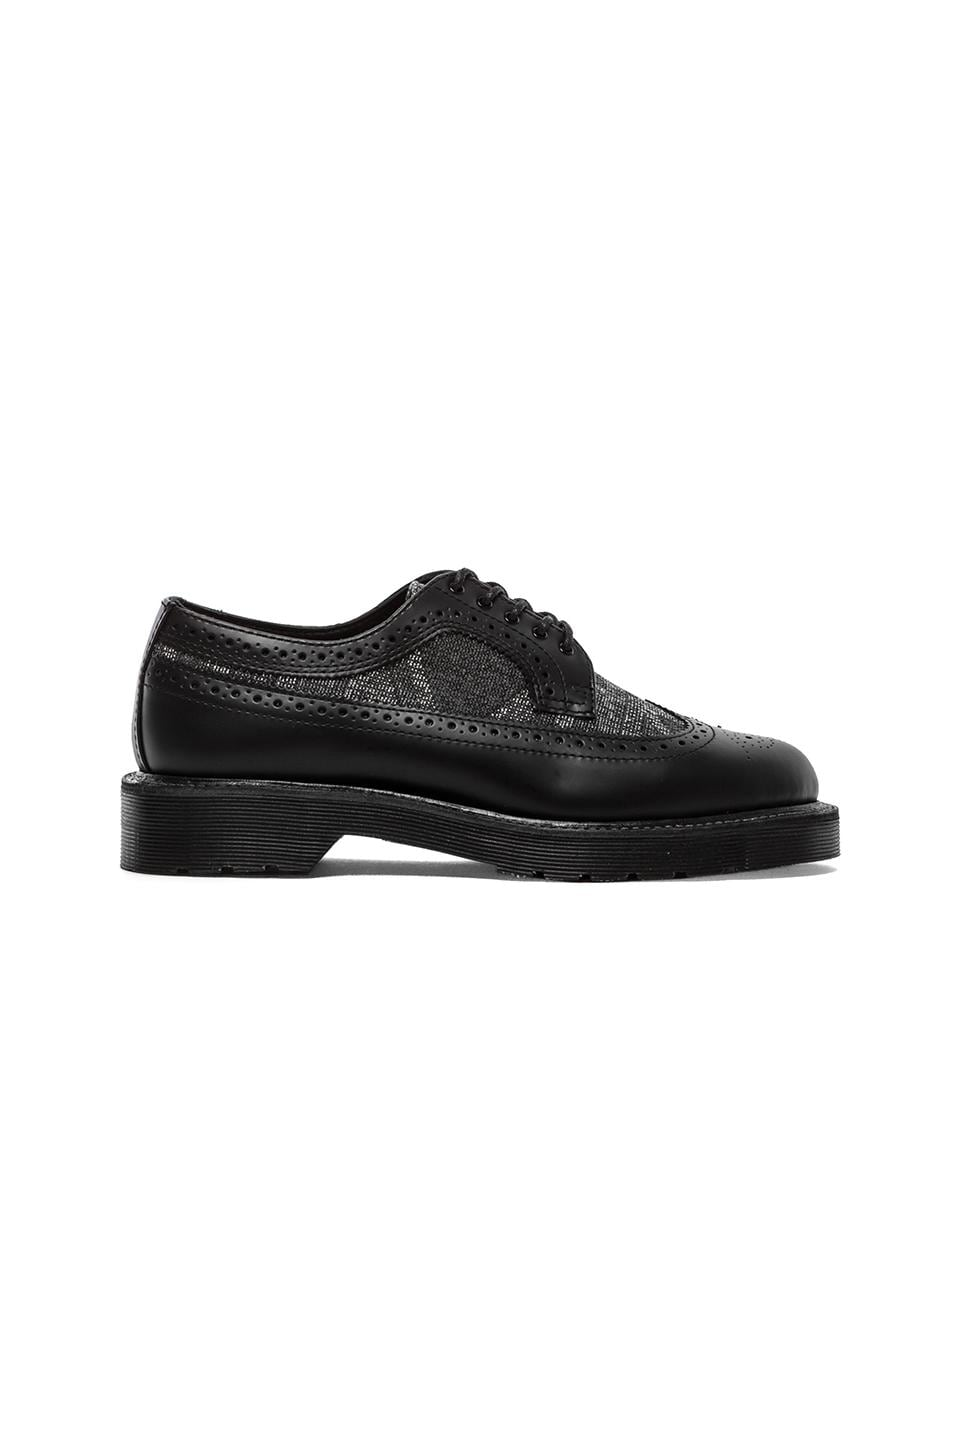 Dr. Martens Alfred Brouge Union Jack Shoe in Black & Monochrome